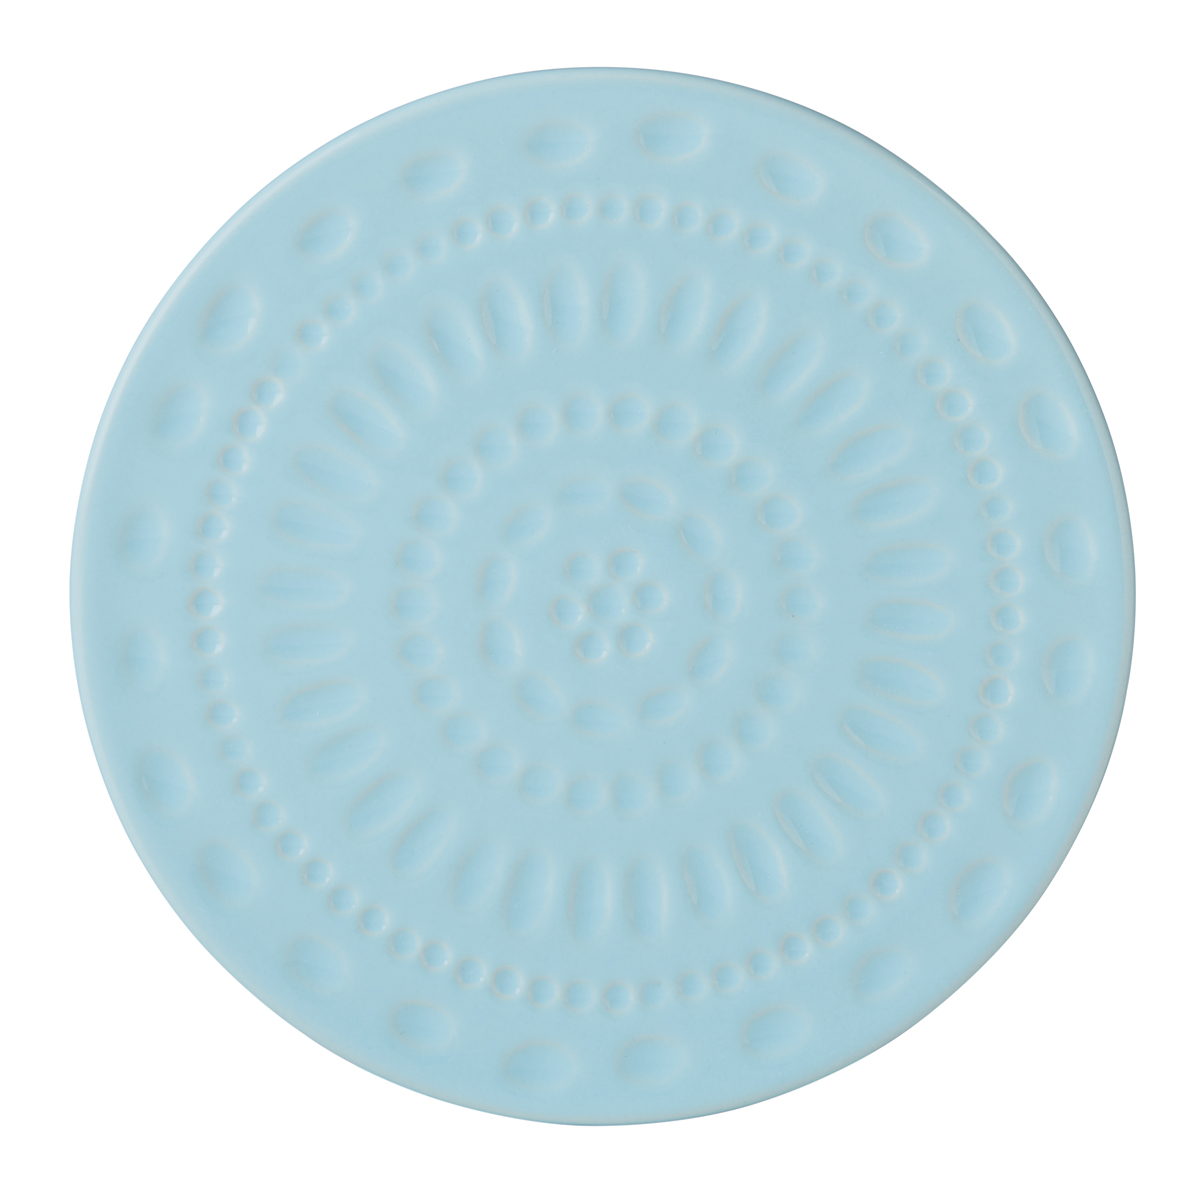 Kate Spade China by Lenox, Stoneware Willow Drive Blue Trivet, Round